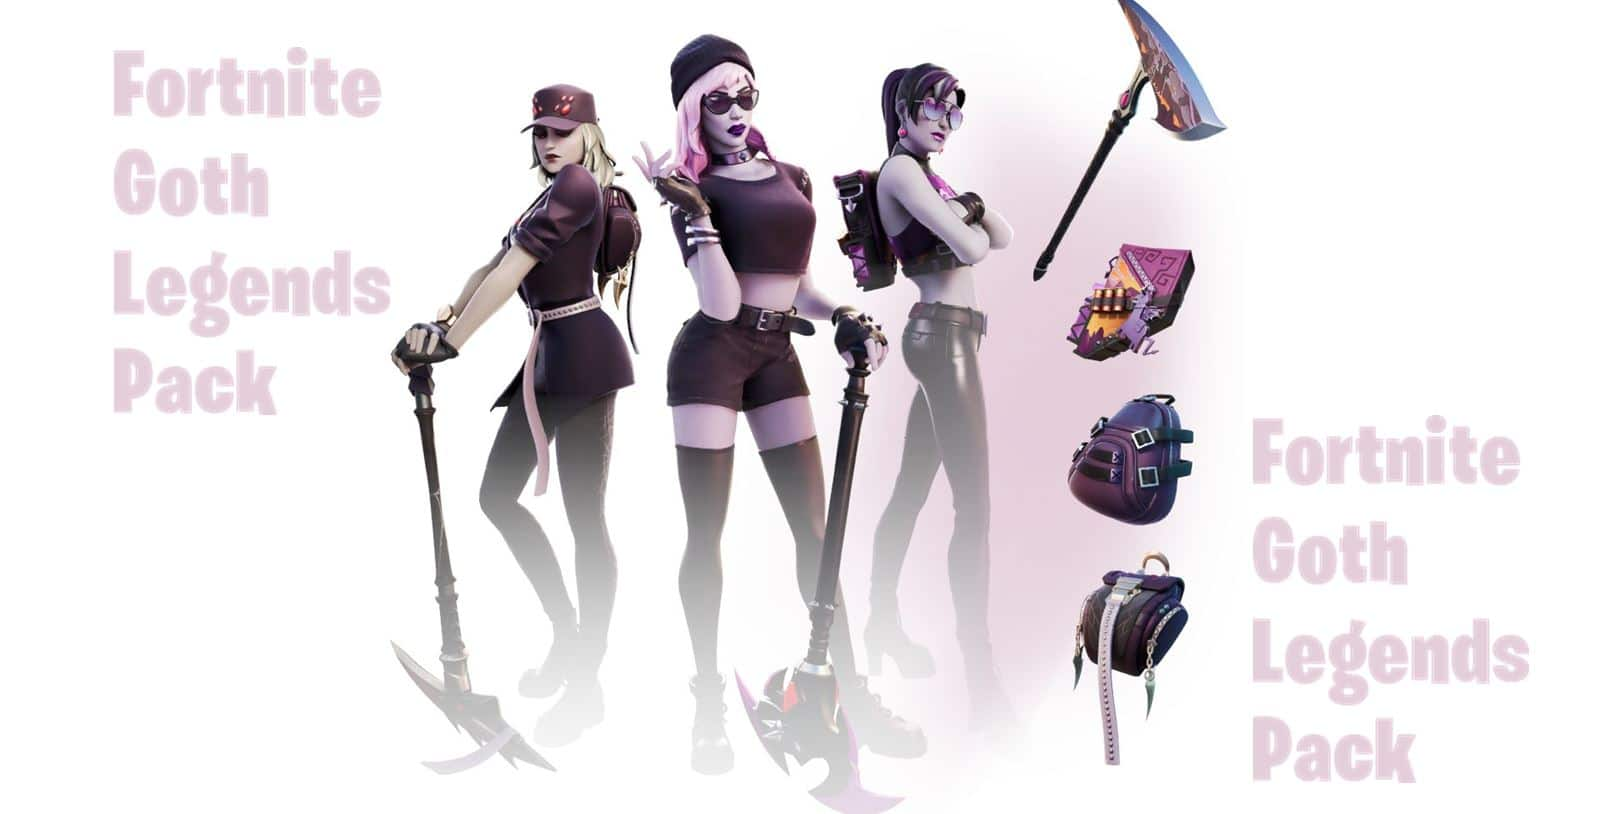 Goth Legends Fortnite Pack